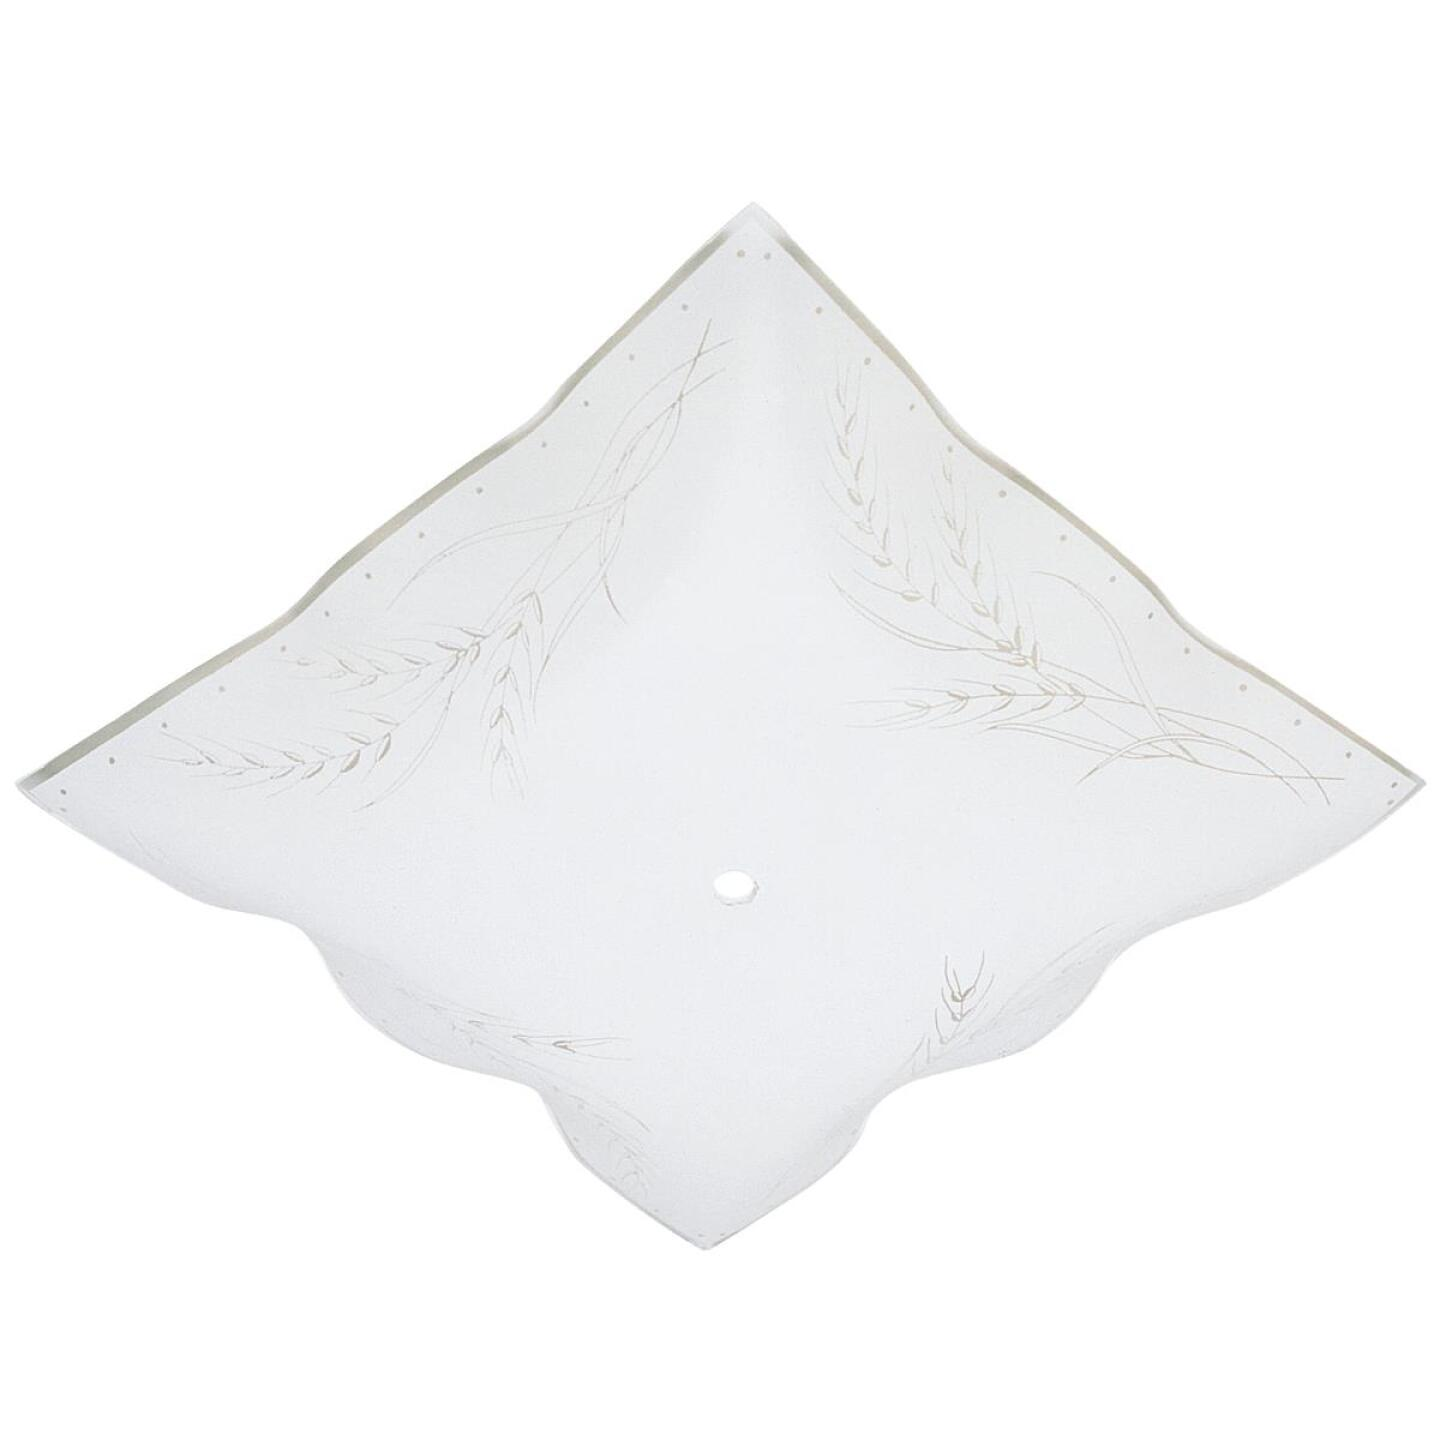 Westinghouse 12 In. White Square Wheat Design Ceiling Diffuser Image 1